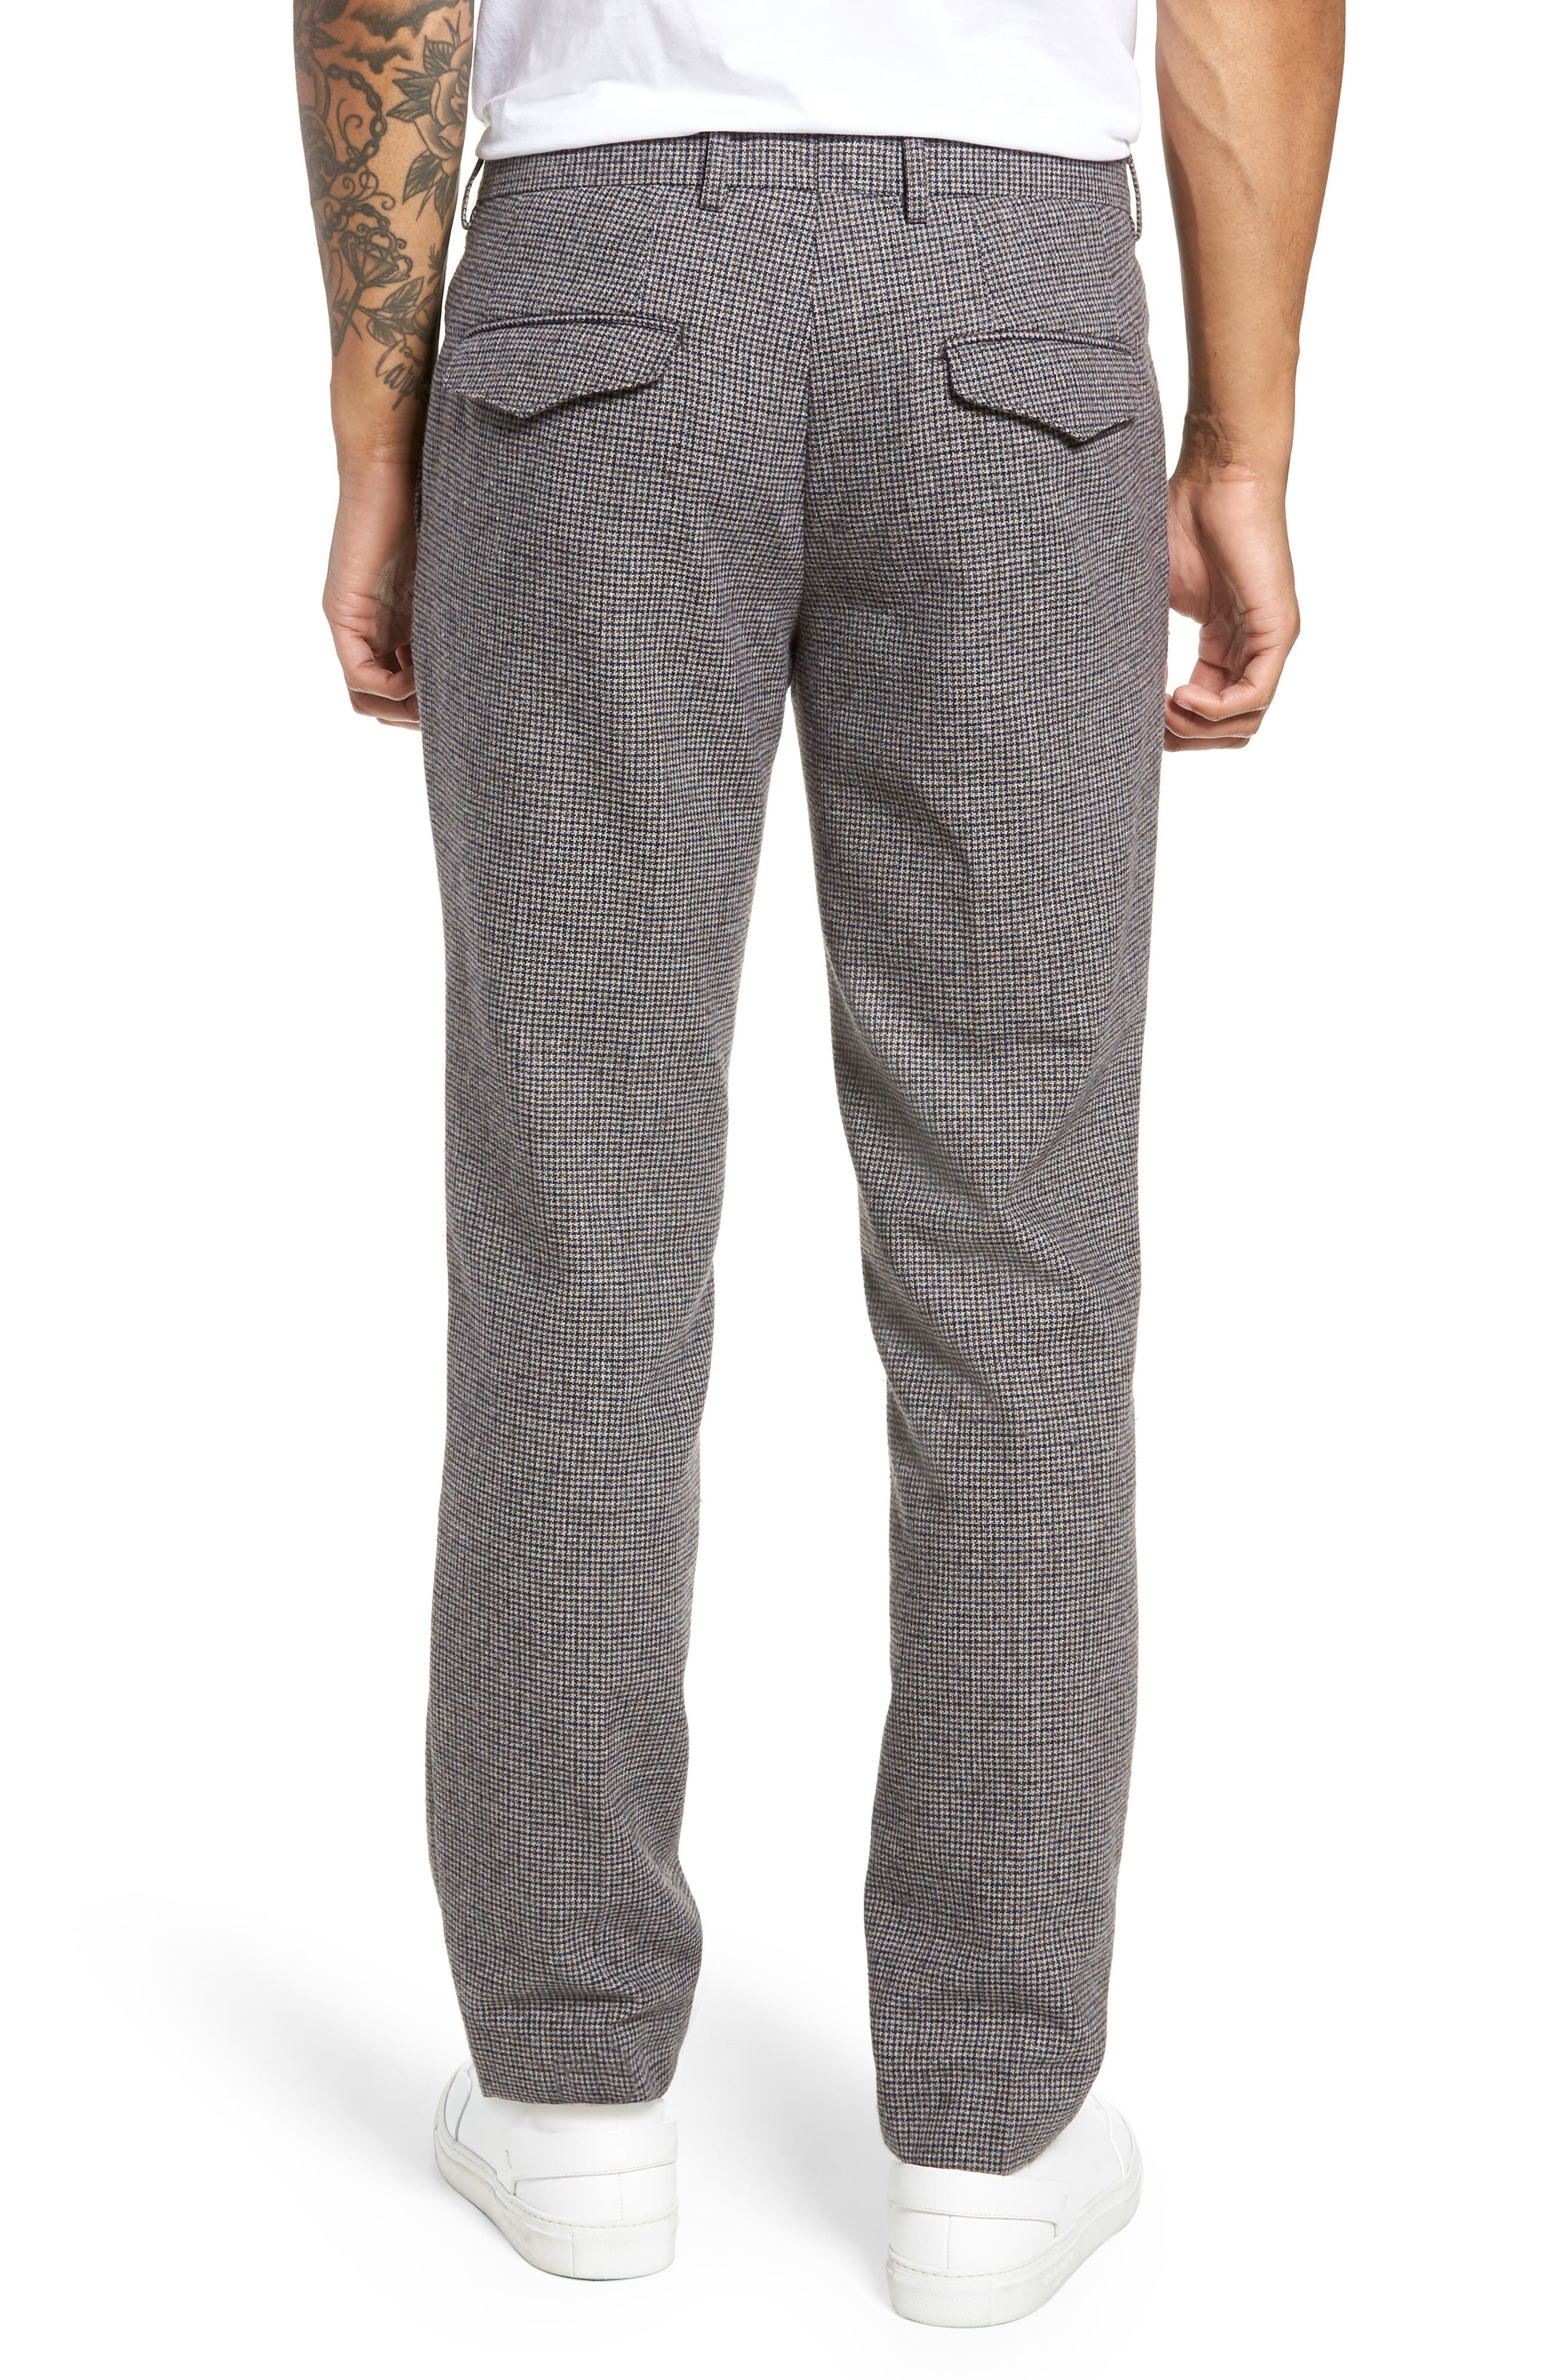 Houndstooth Trousers,                             Alternate thumbnail 2, color,                             DARK GREY